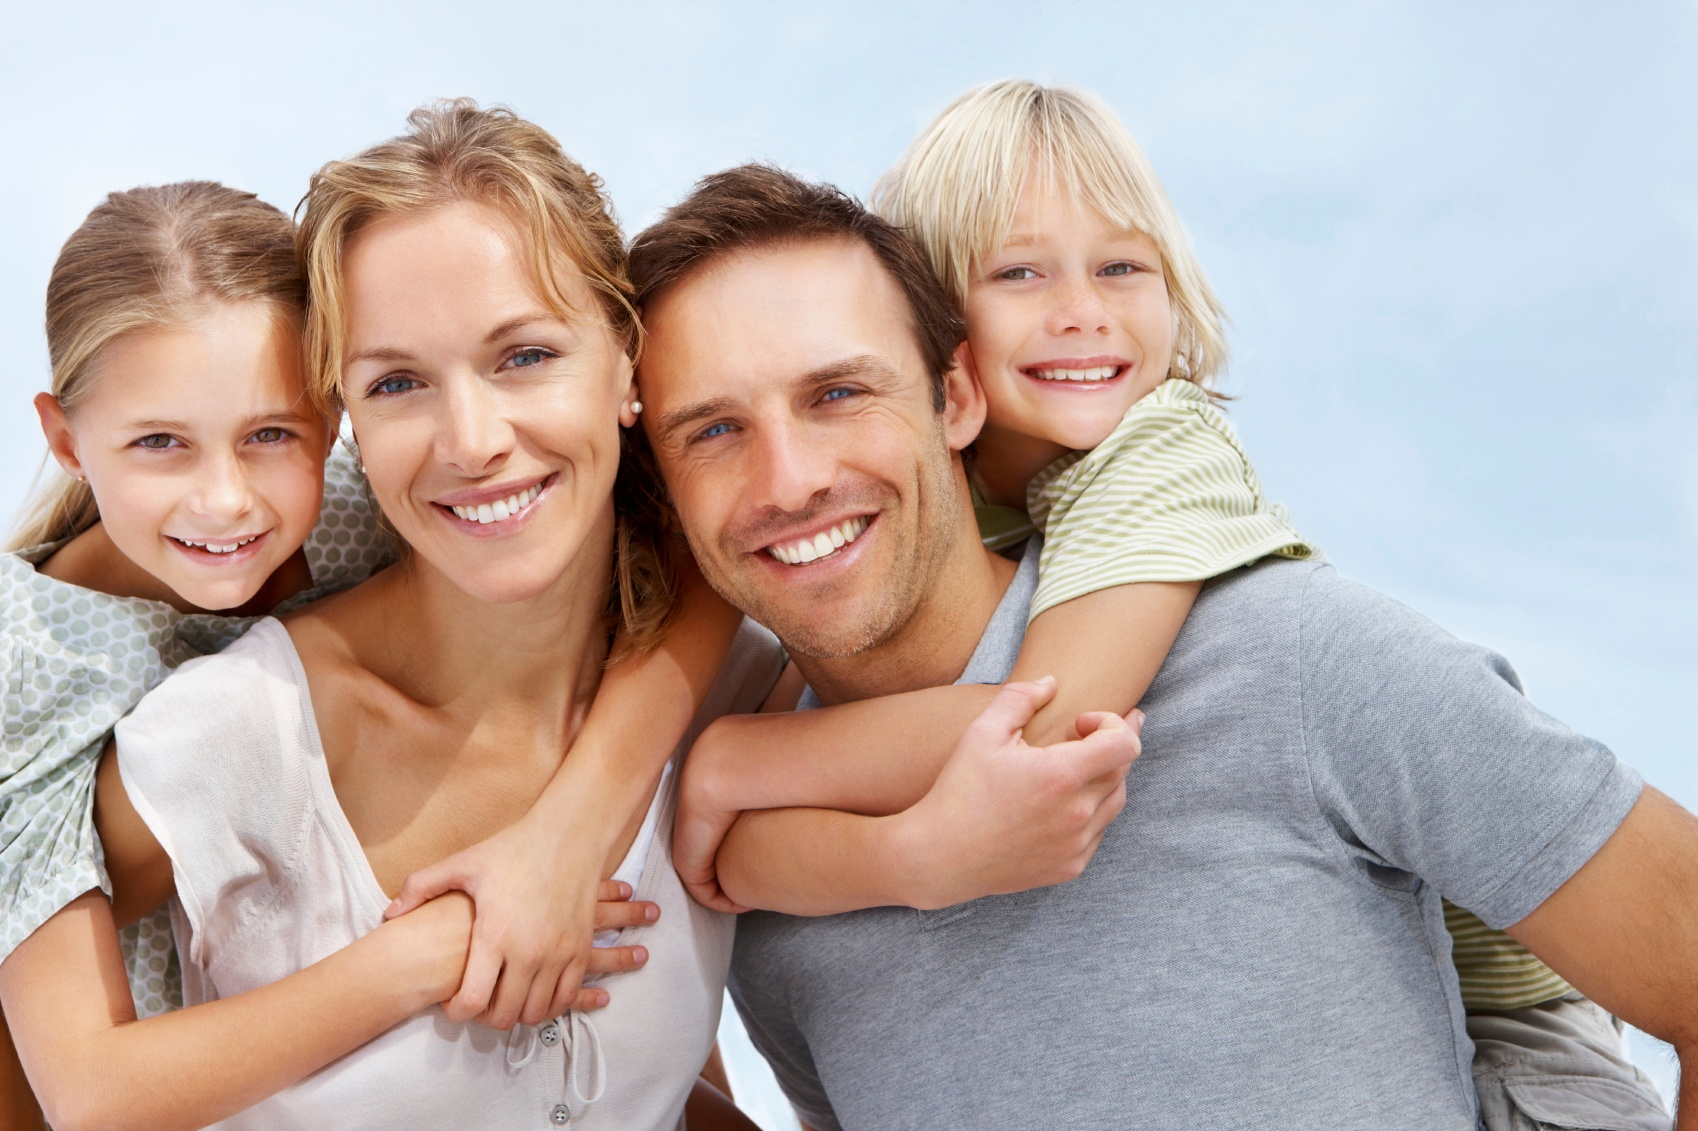 The Typical Family Saves $500 per month